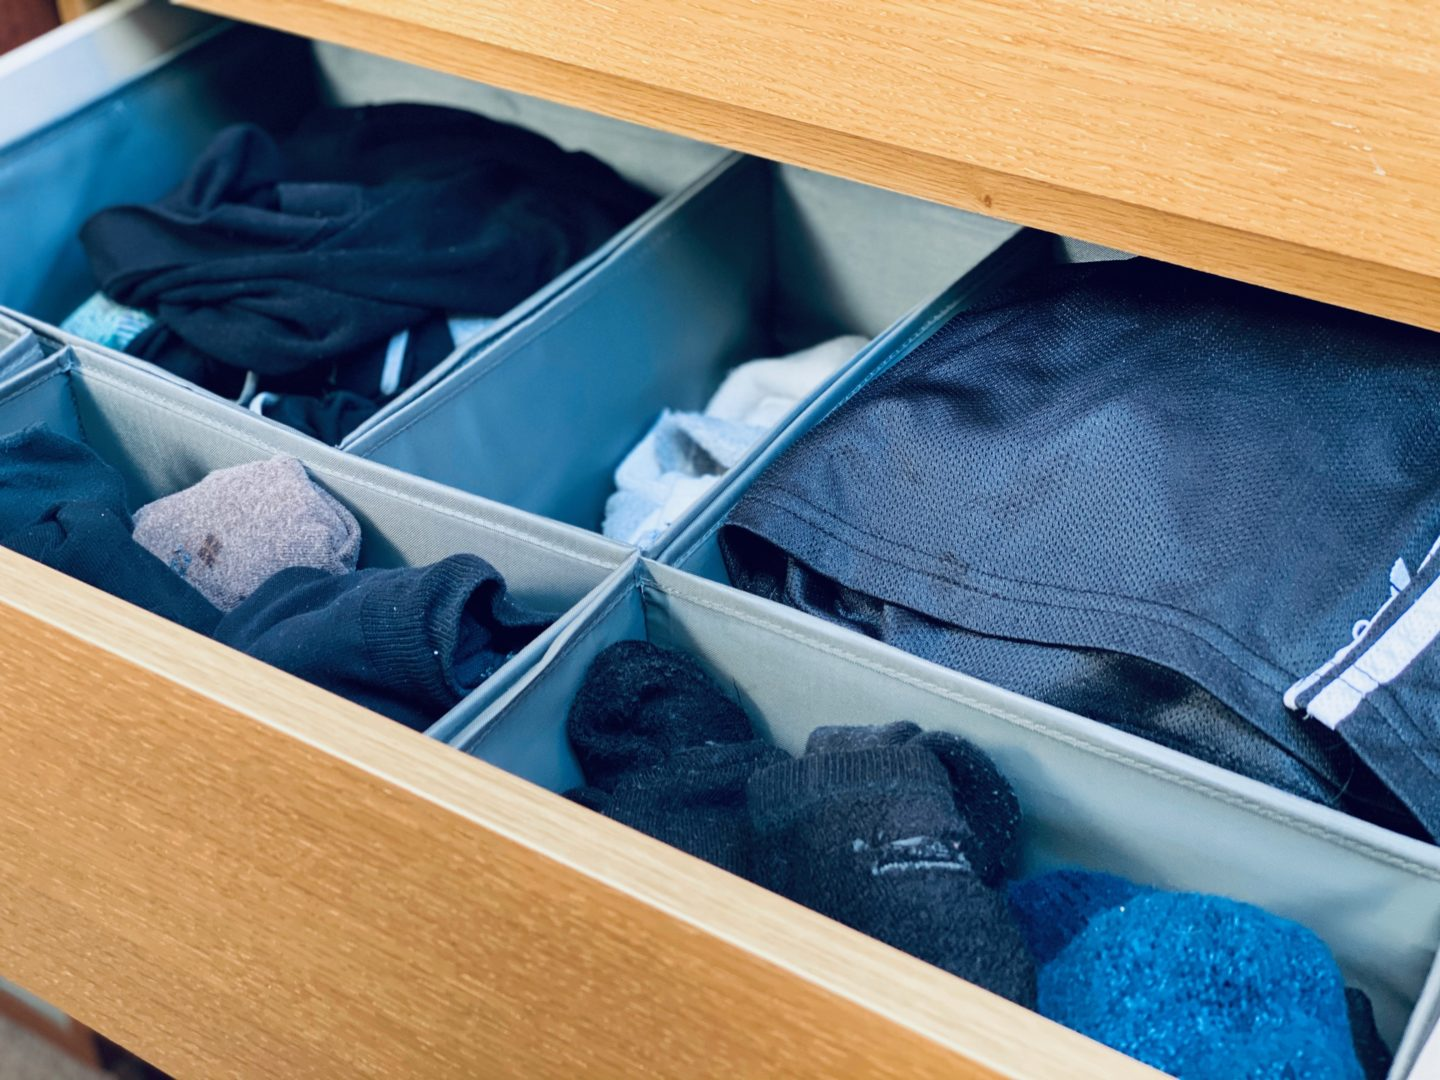 AD: Taking back control of mornings for only £51.75 with IKEA organisation hacks. Adult's drawer post organisation.